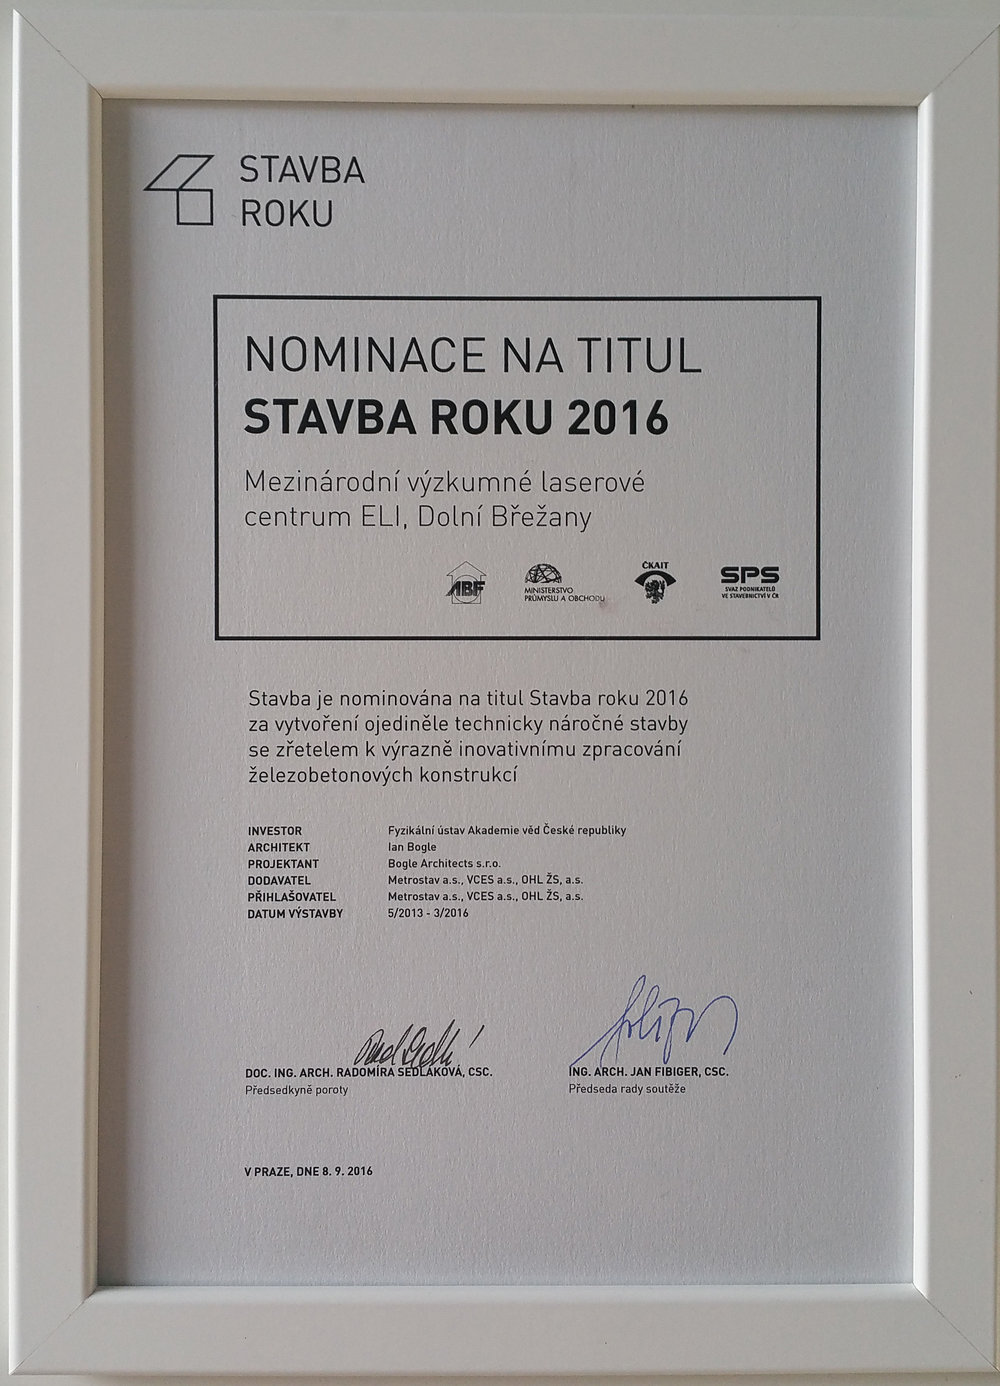 Stavba roku 2016_Nomination for Building of the Year Award.jpg